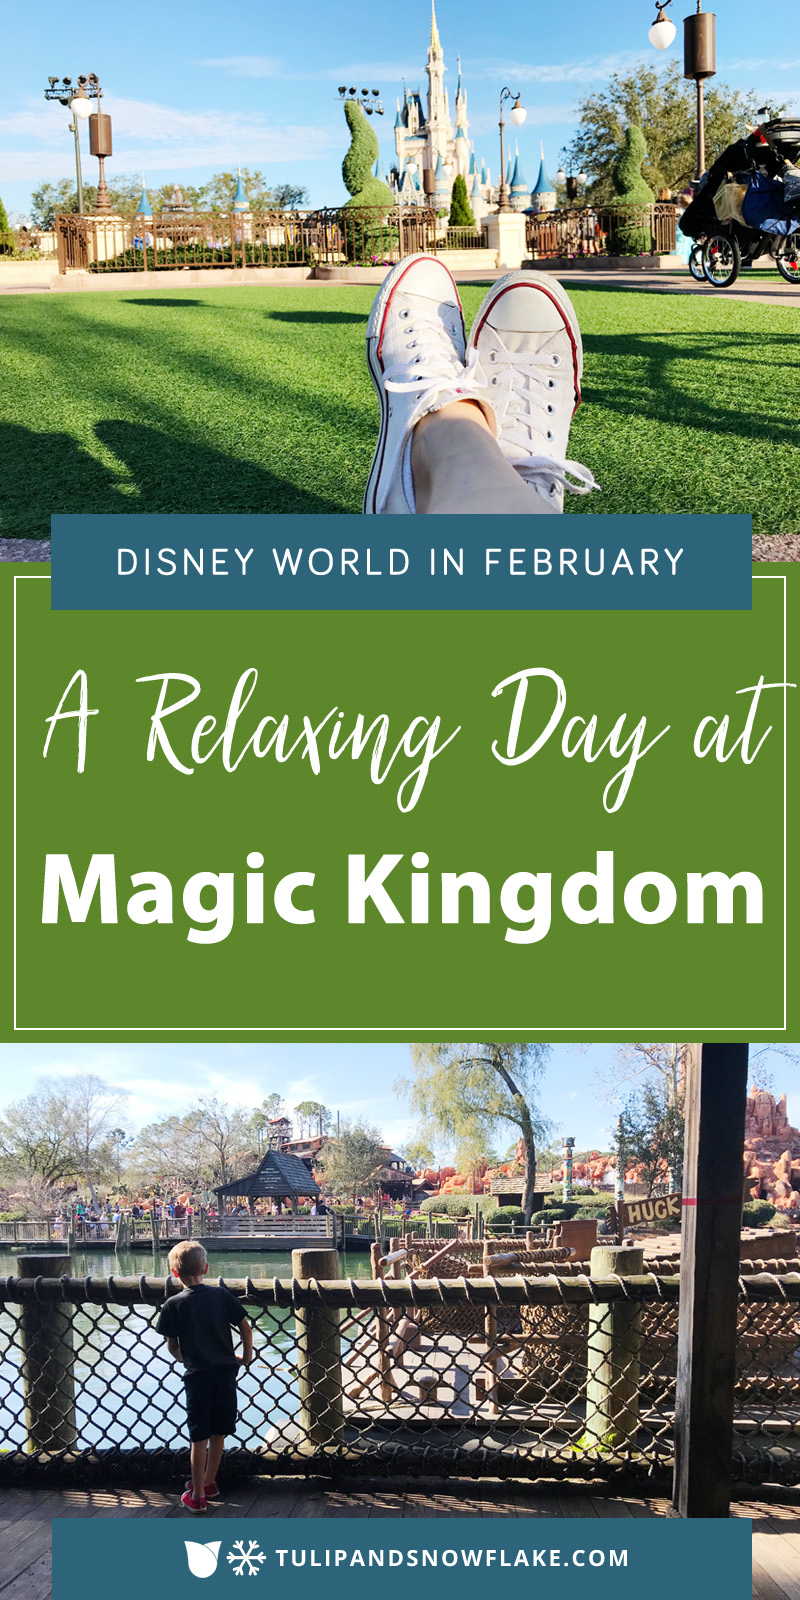 Relaxing Day at Magic Kingdom